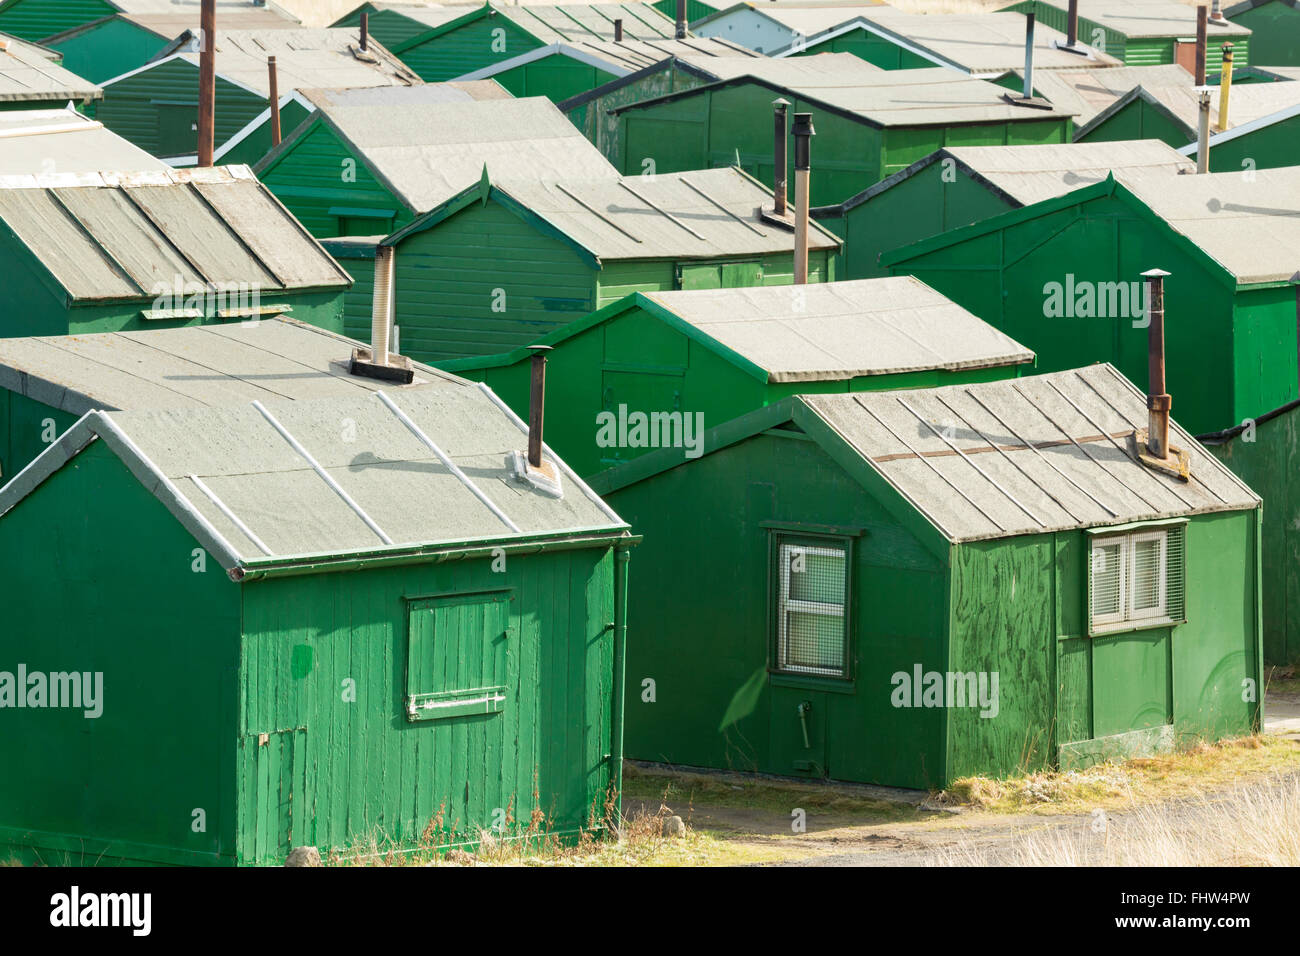 Fisherman's Association huts in the sand dunes at South Gare, Redcar and Cleveland, February 2016. - Stock Image